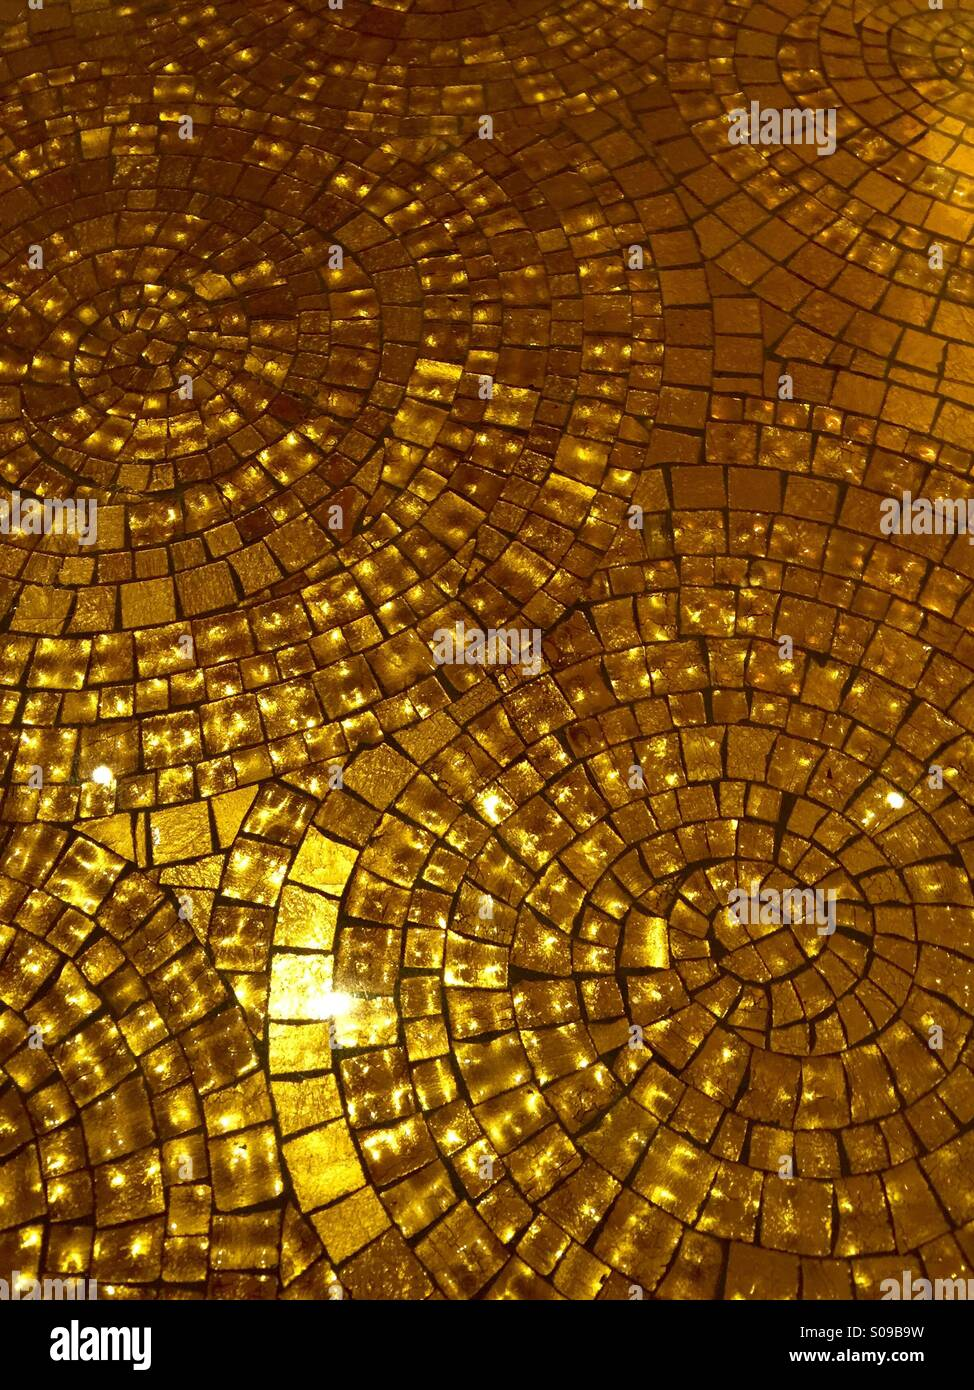 Gold Mosaik Fliesen Stockfoto Bild 309993093 Alamy